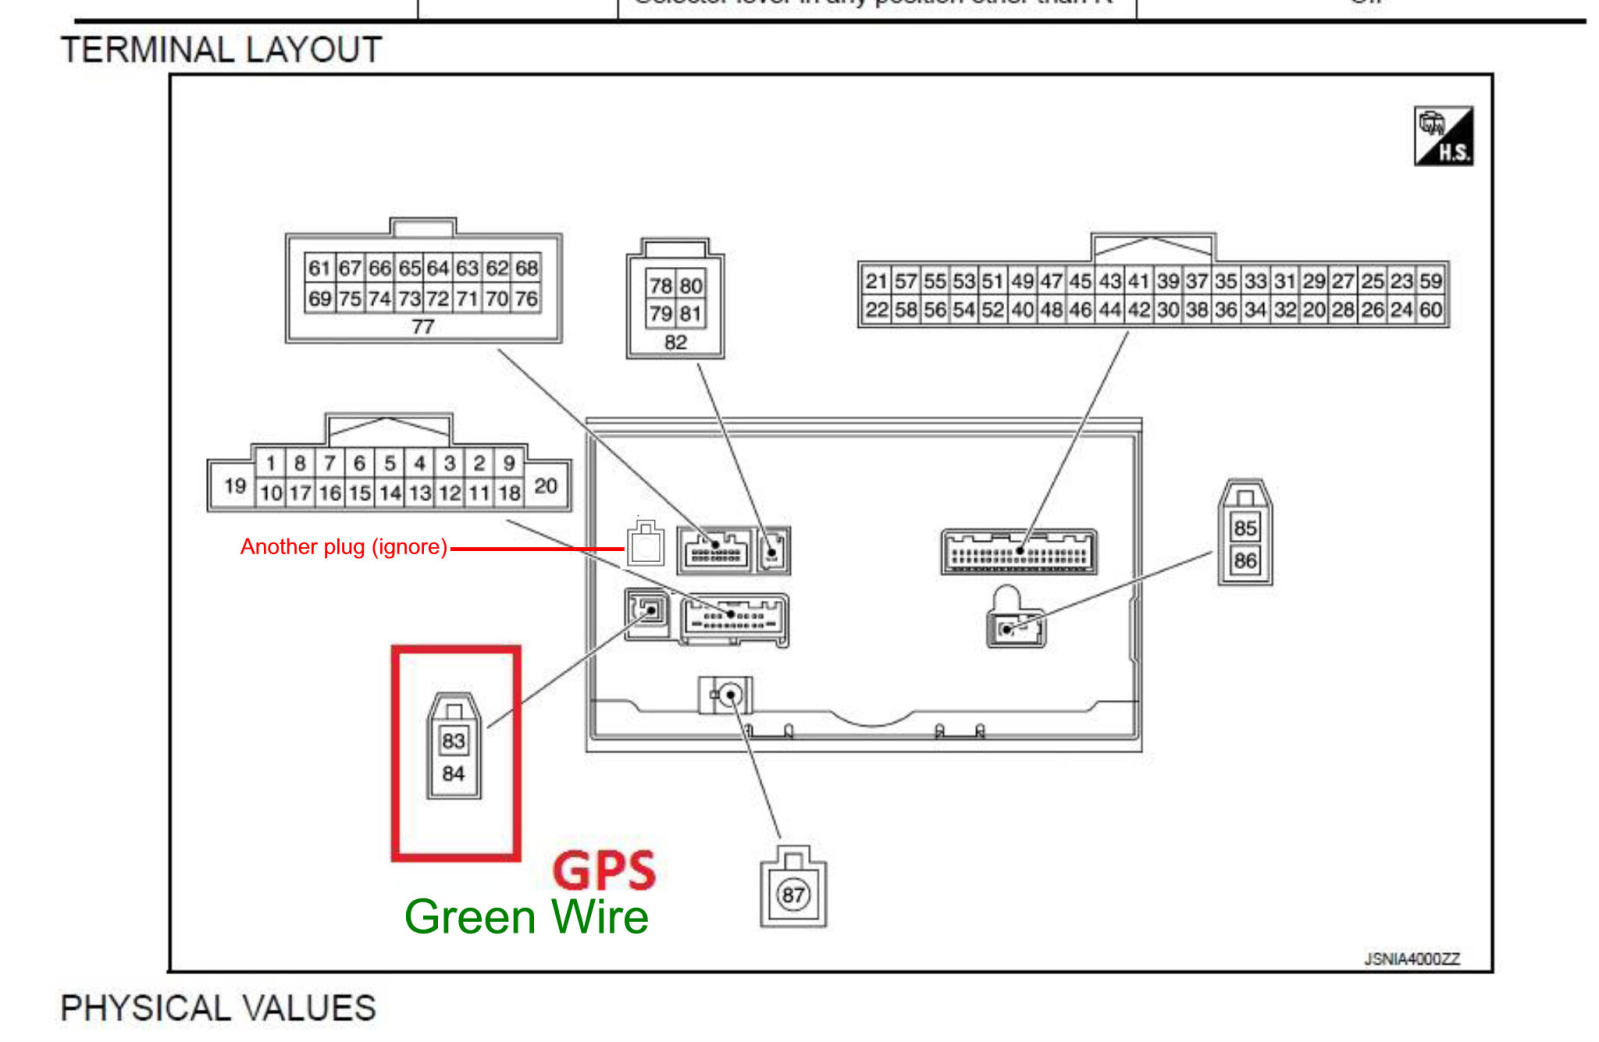 nissan leaf wiring diagram schema diagram database nissan leaf fuse diagram [ 1599 x 1042 Pixel ]